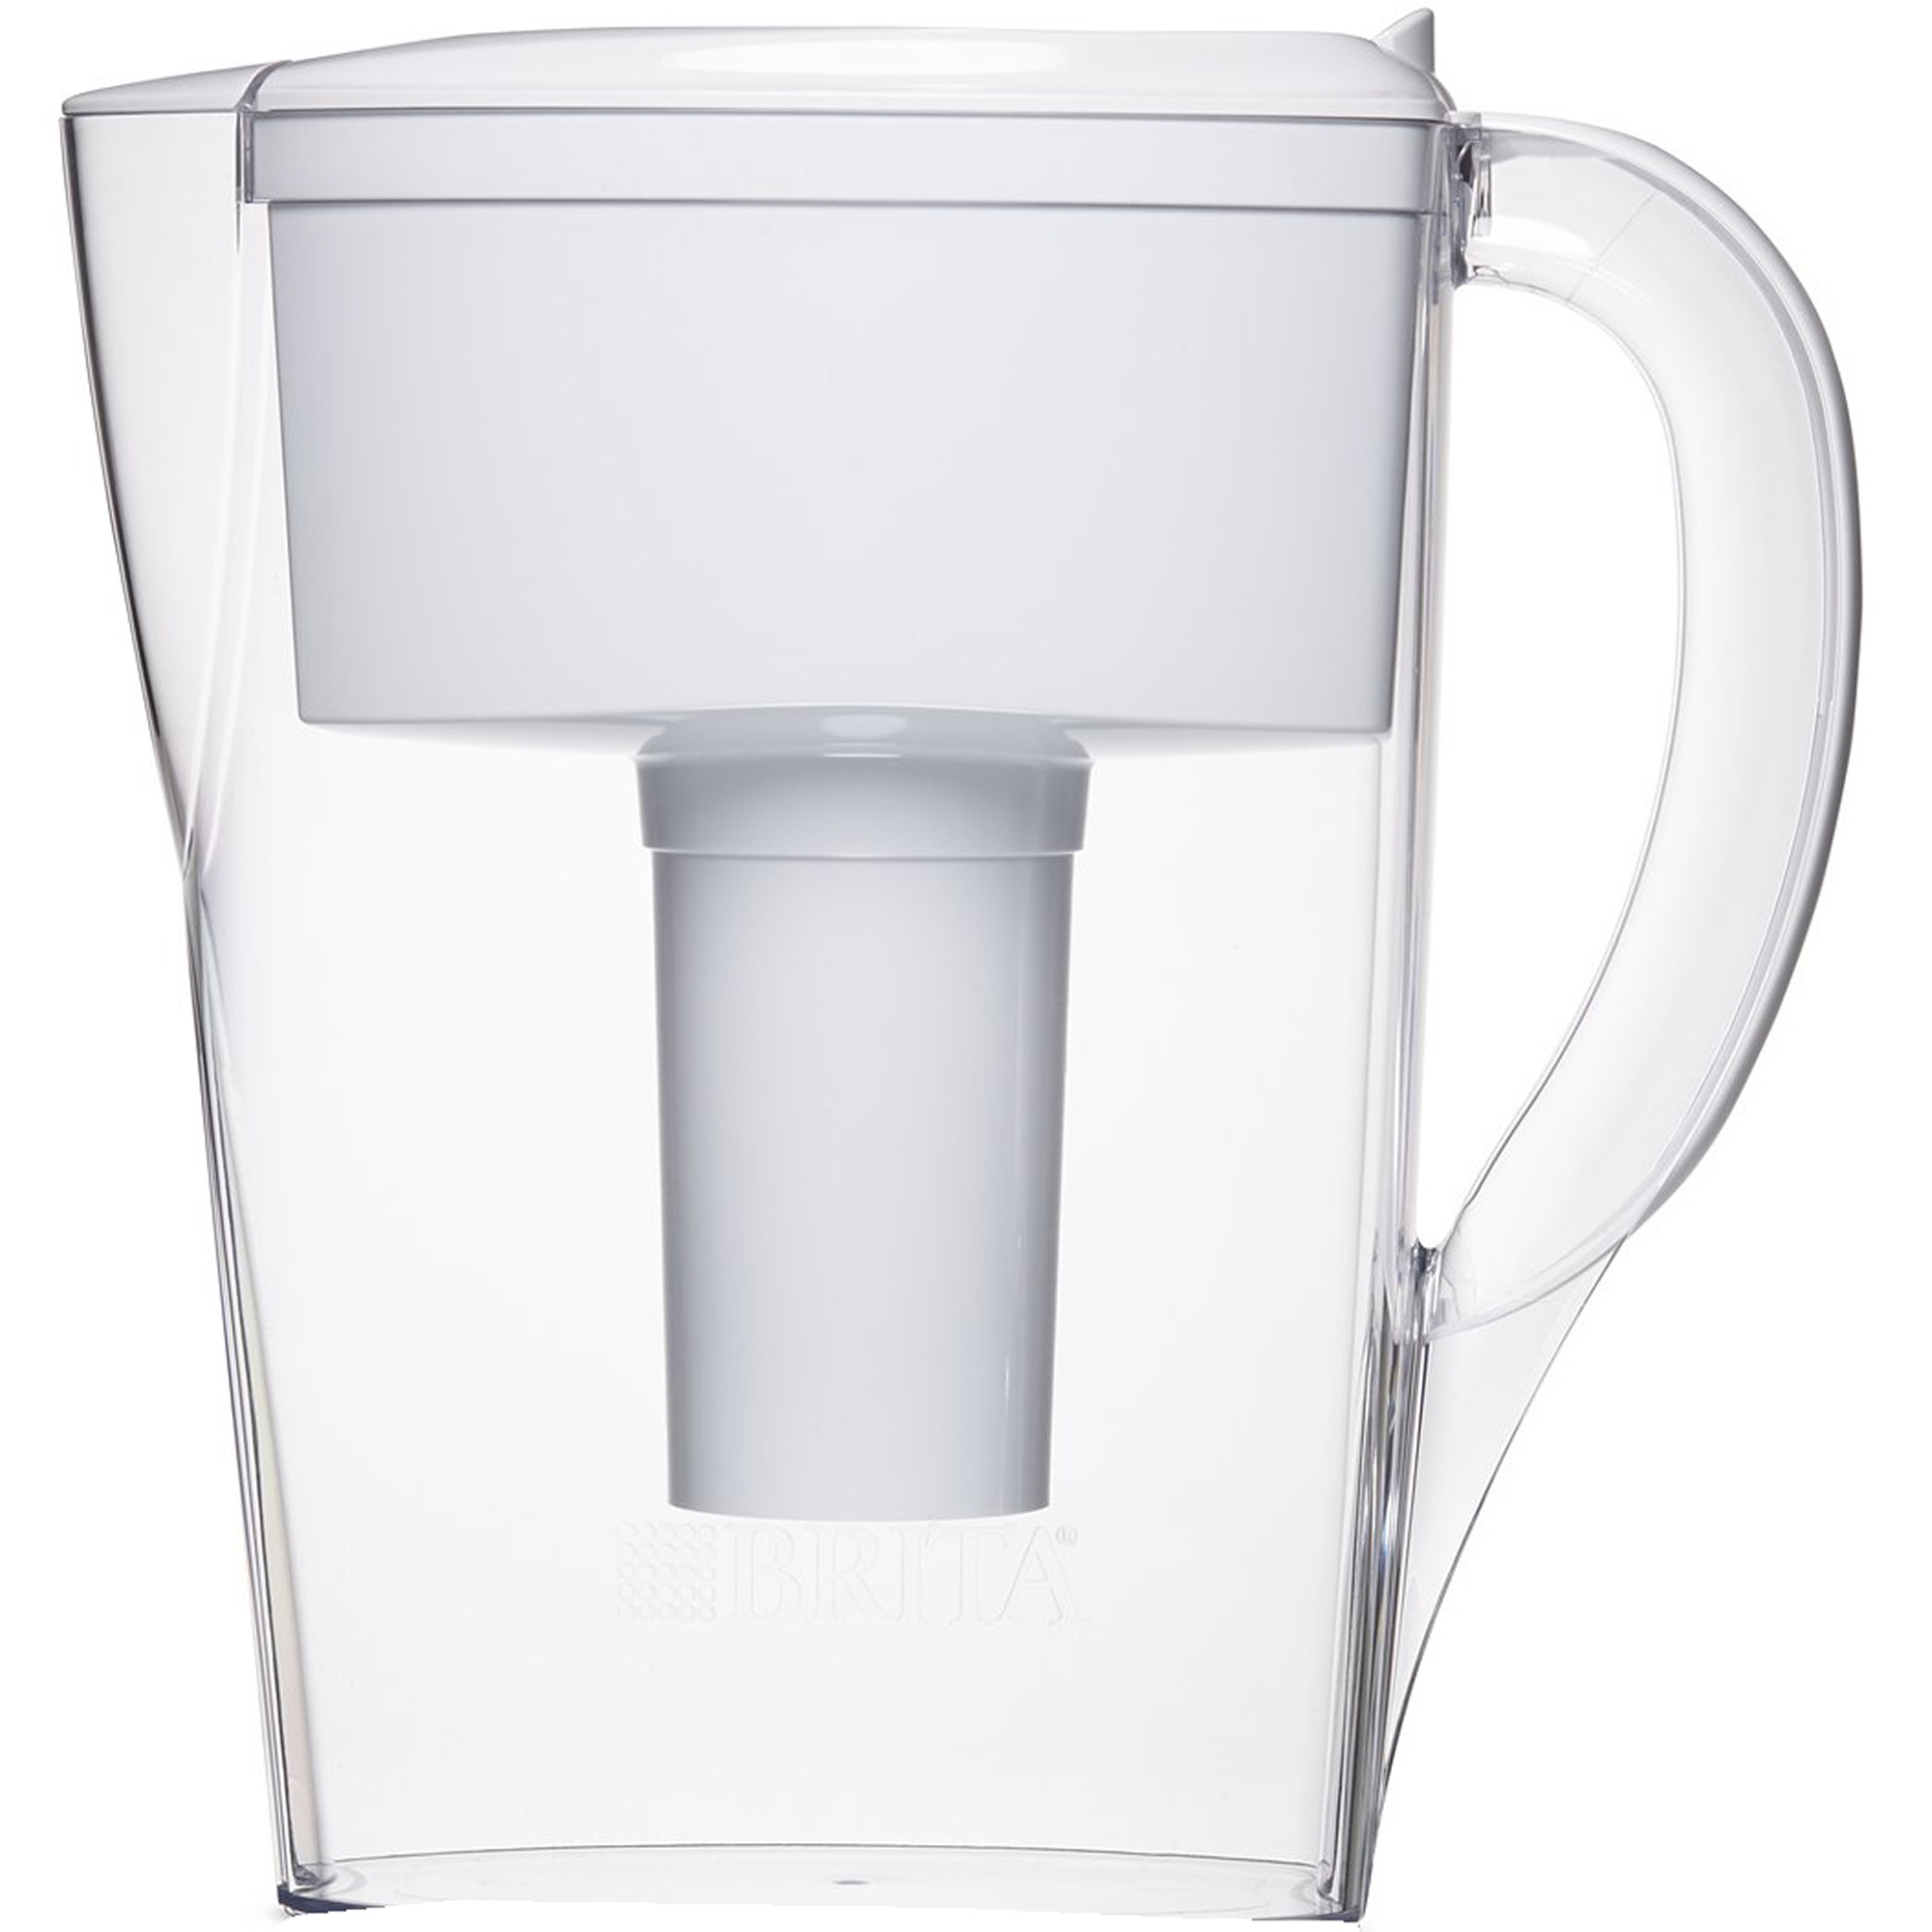 Brita Small Space Saver Water Pitcher with Filter - 6 Cup - BPA Free - White